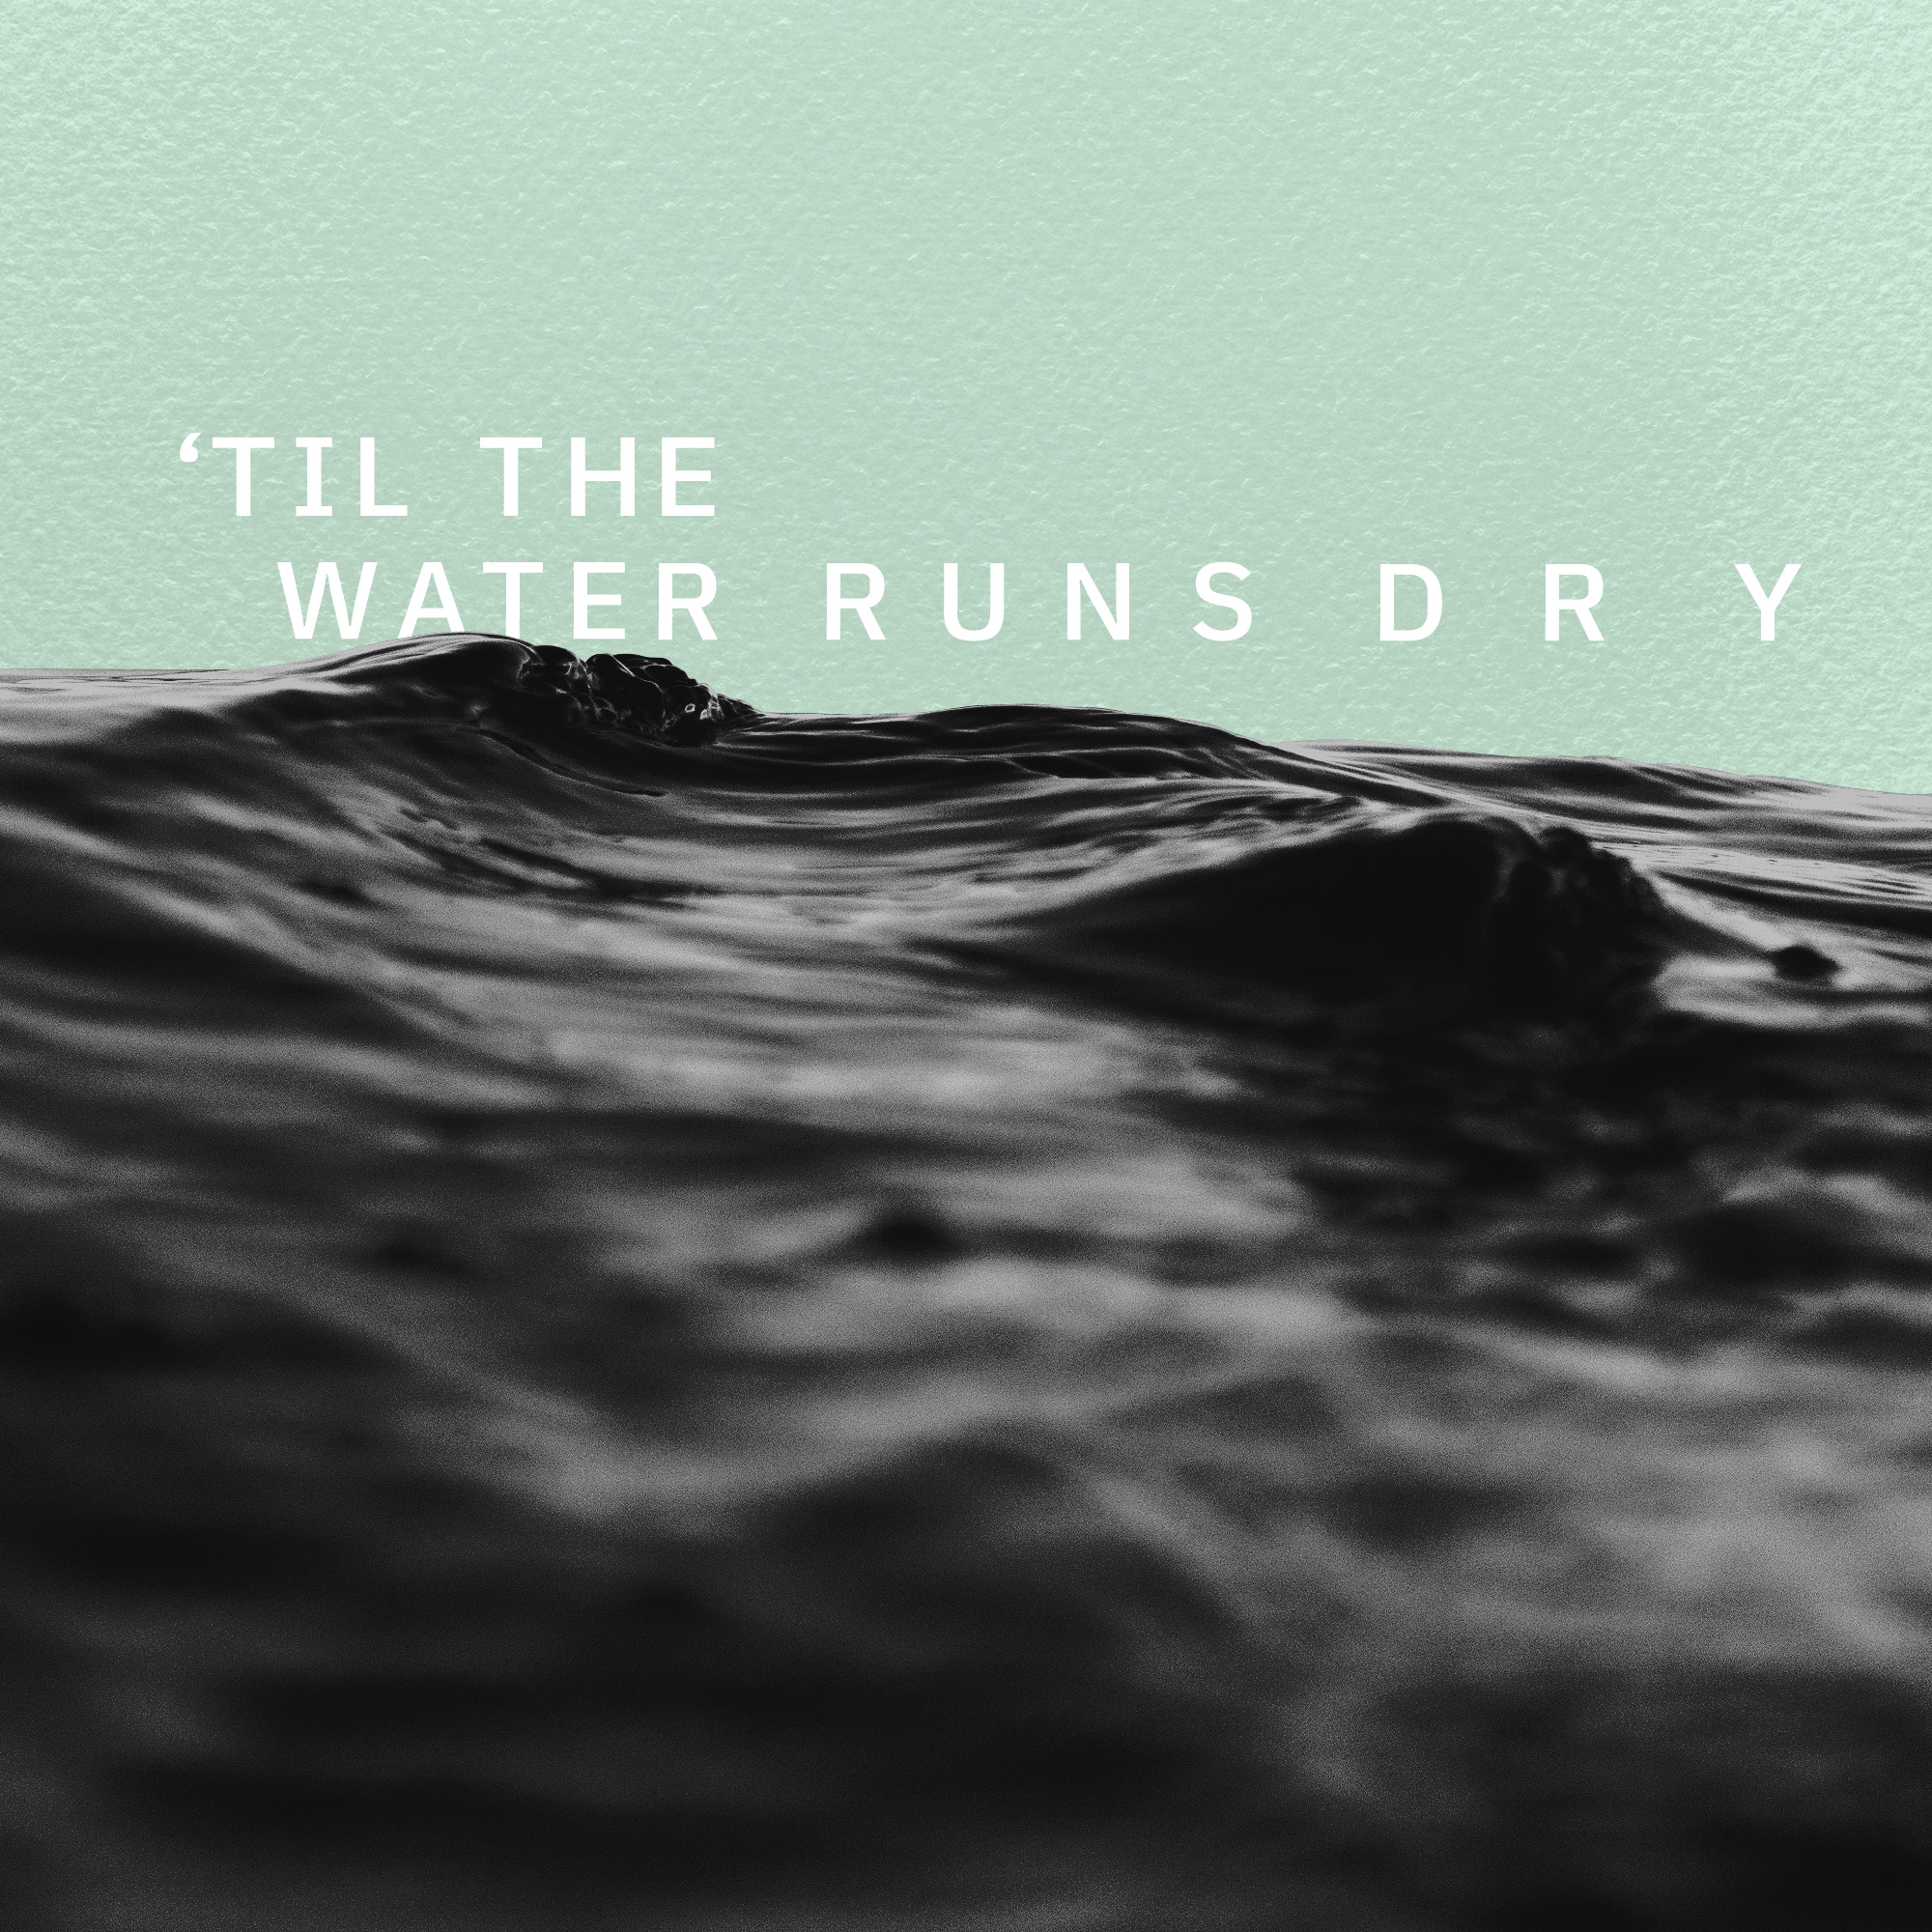 'Til the Water Runs Dry - words & music by Craig Haller